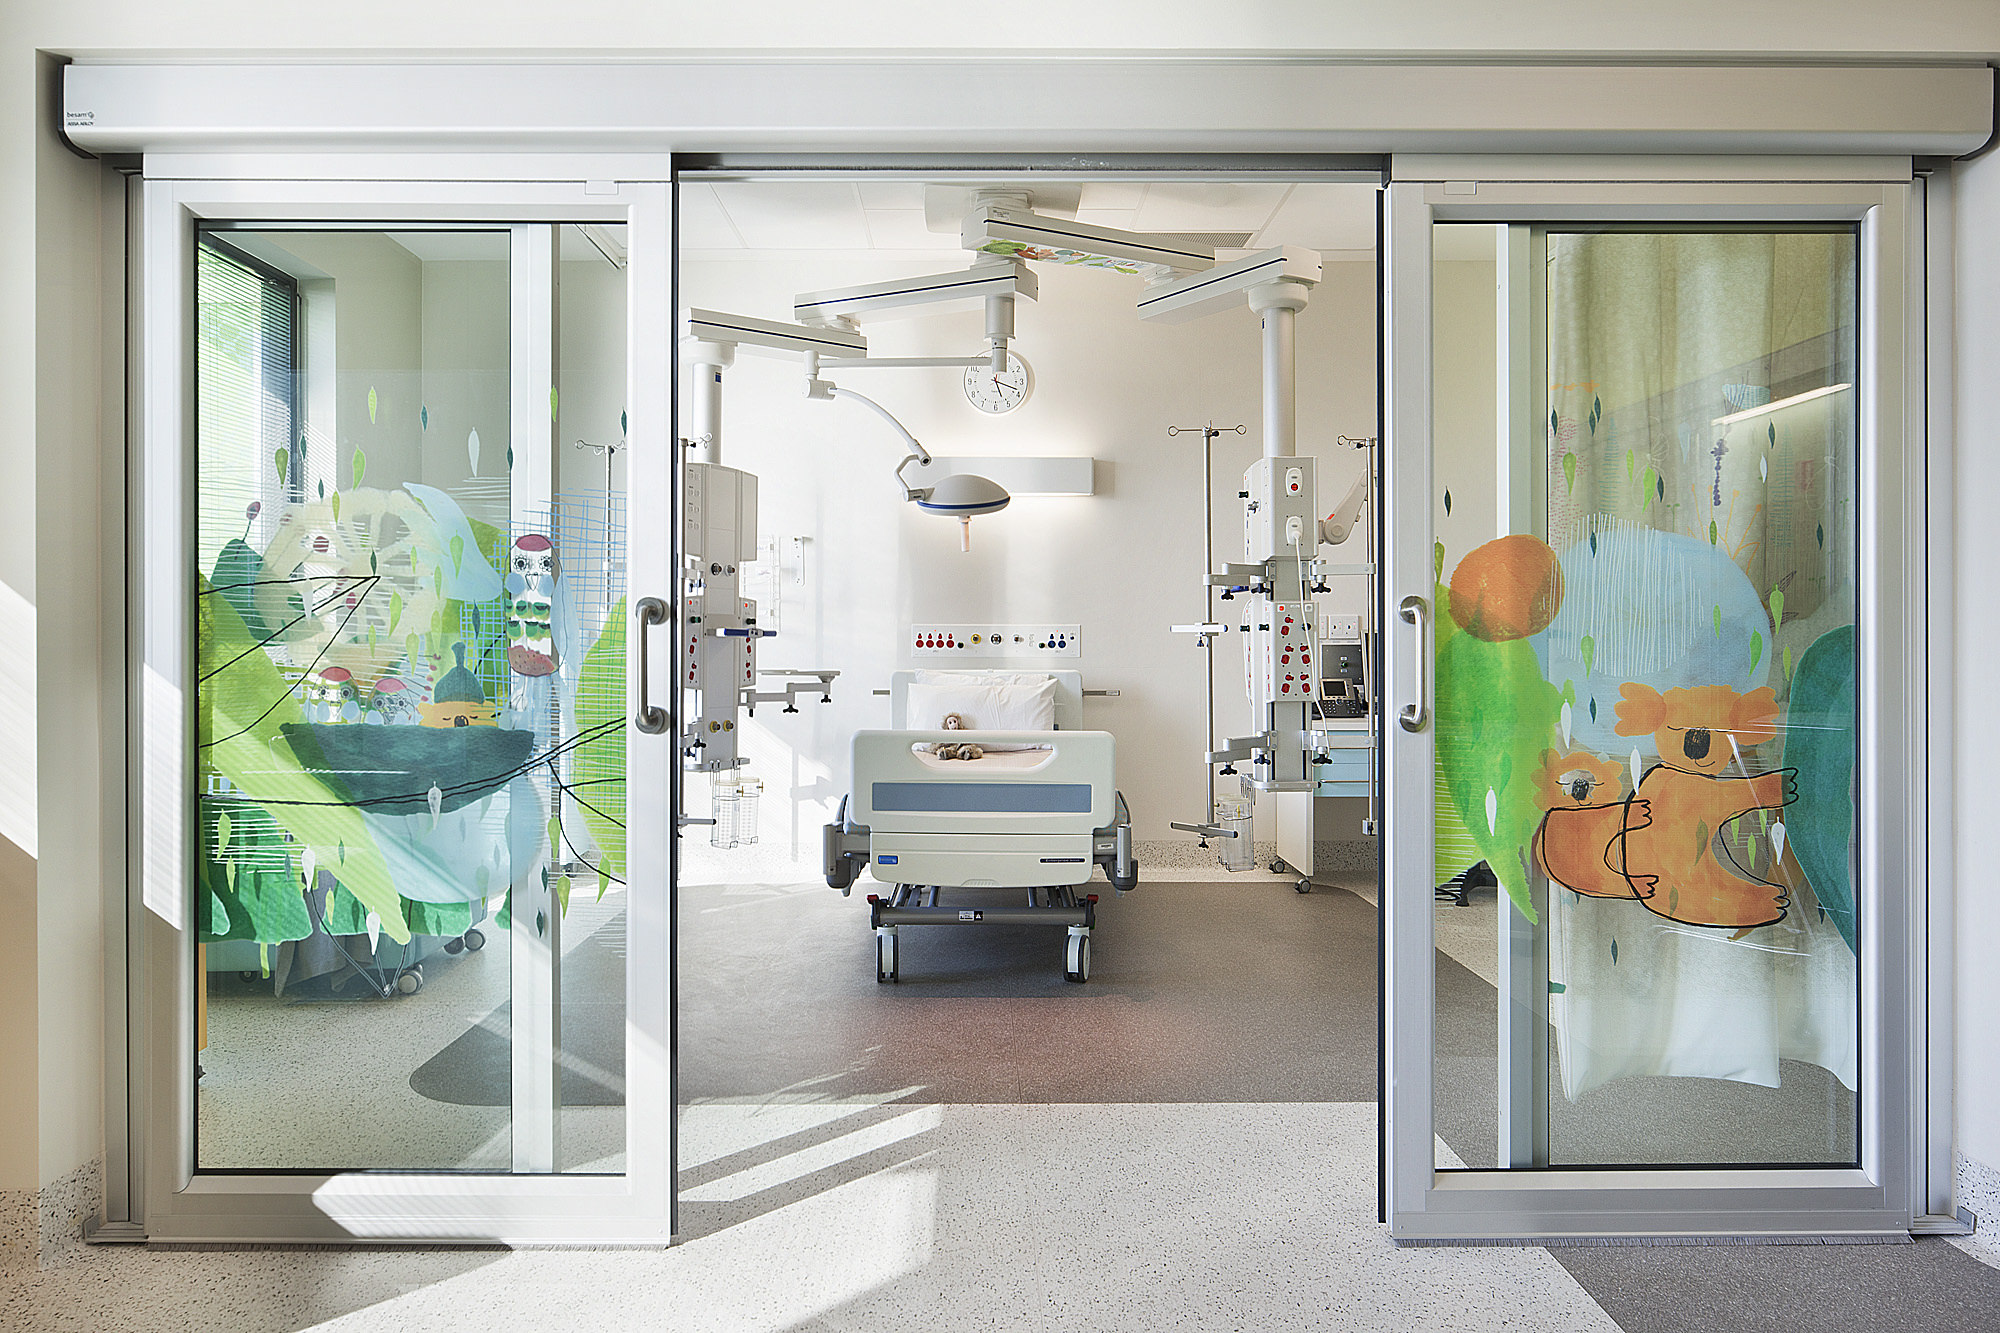 Royal Children S Hospital Winner 2012 Australian Interior Design Awards Billard Leece Partnership Melbourne Sydney